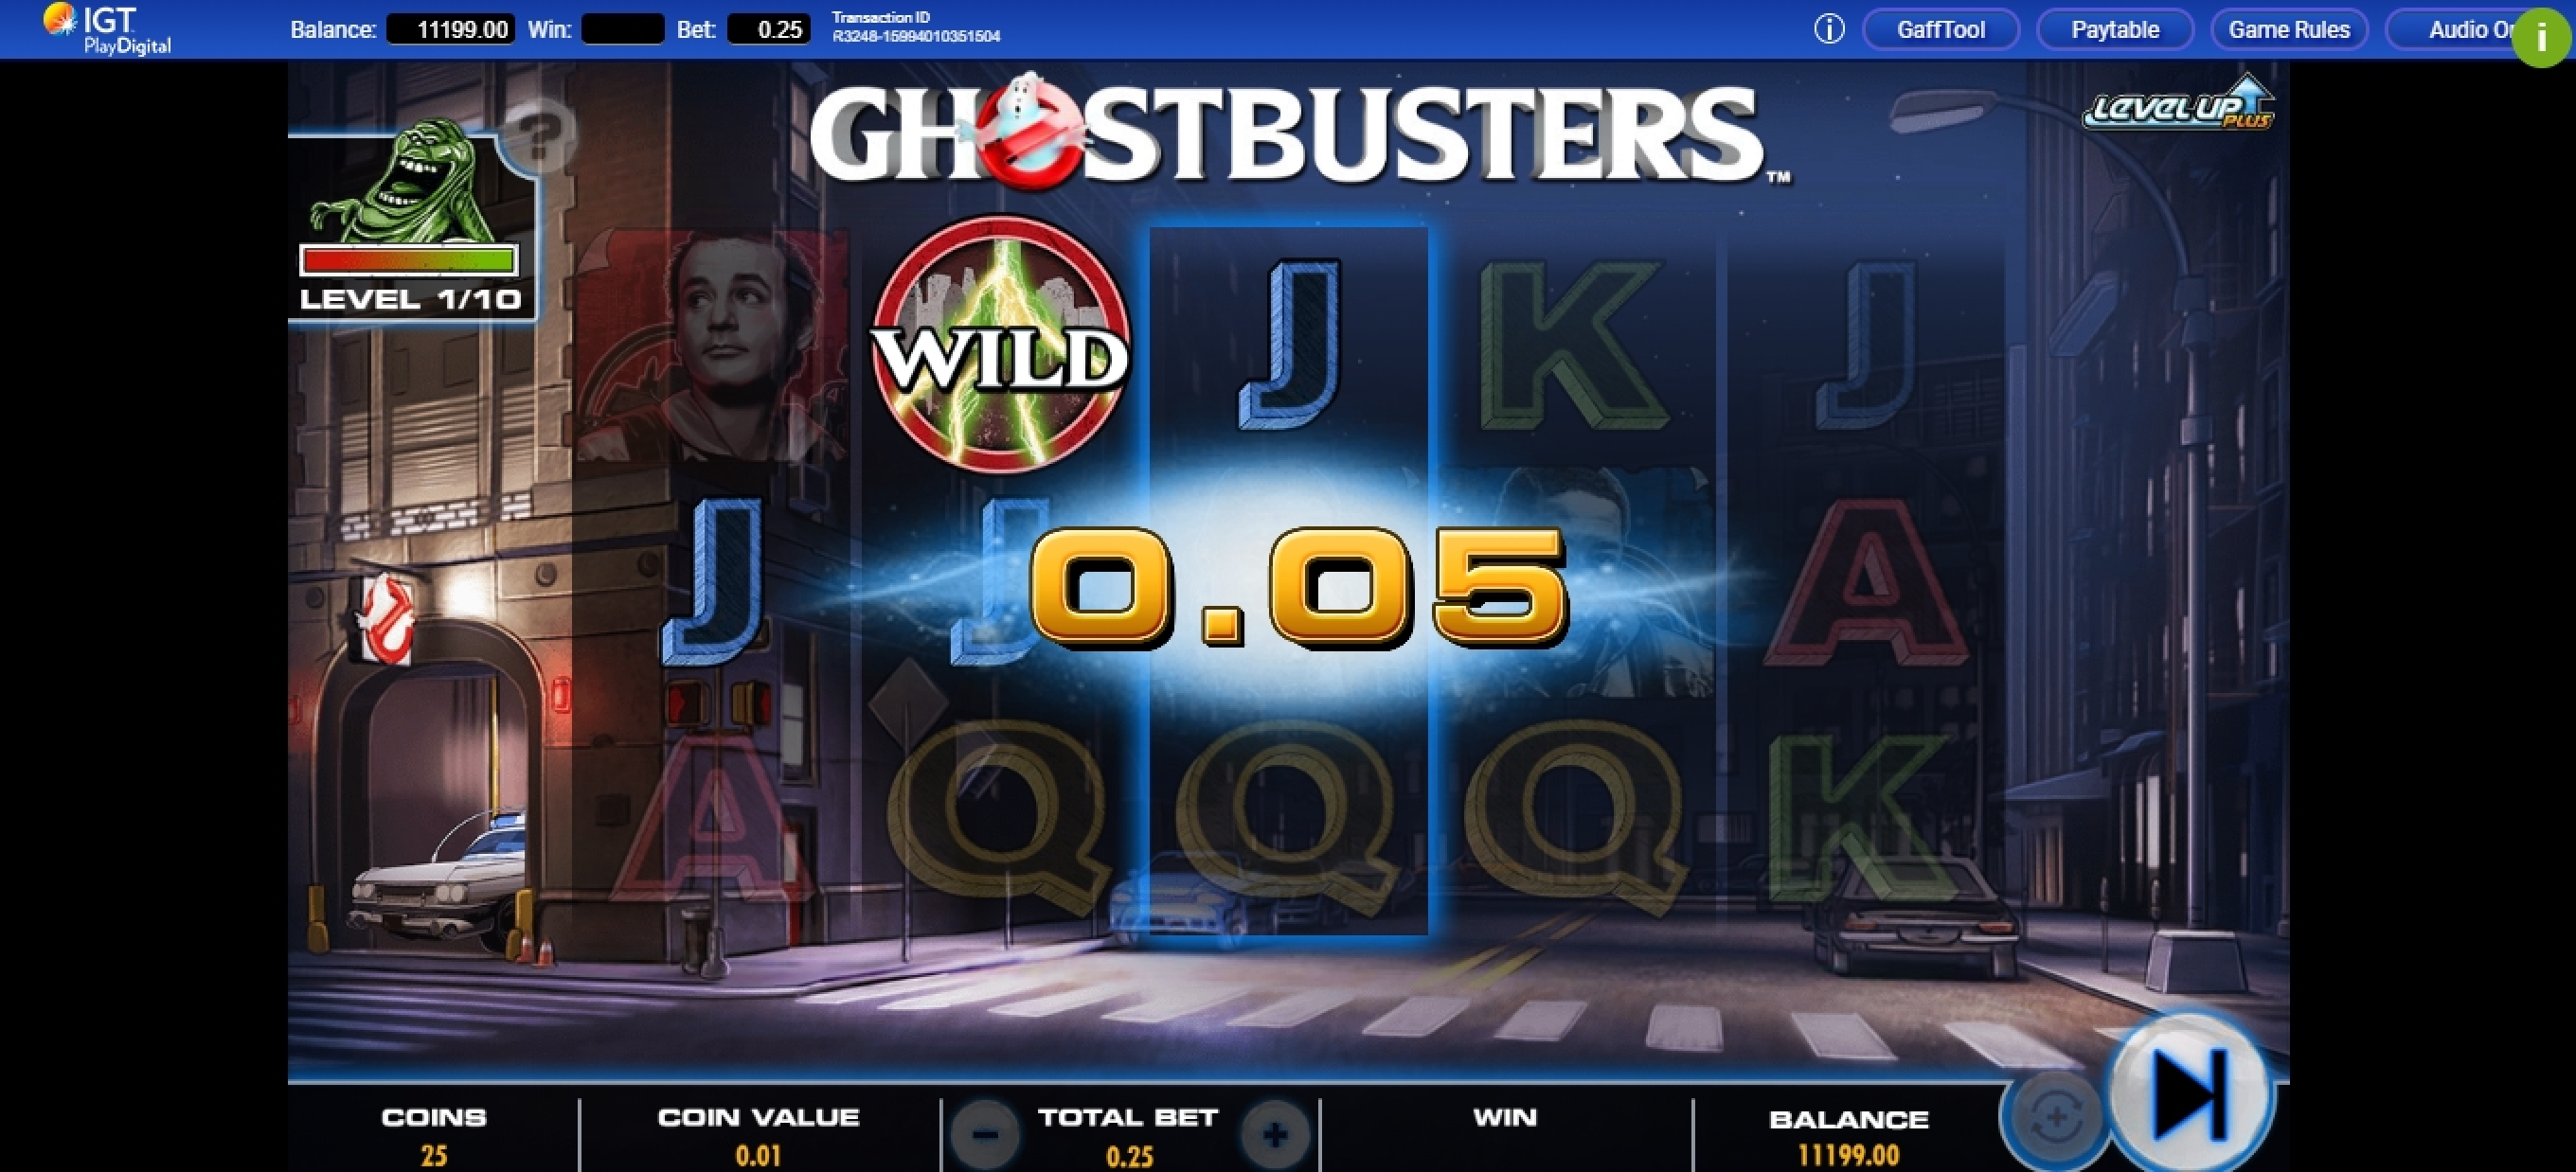 Win Money in Ghostbusters Plus Free Slot Game by IGT